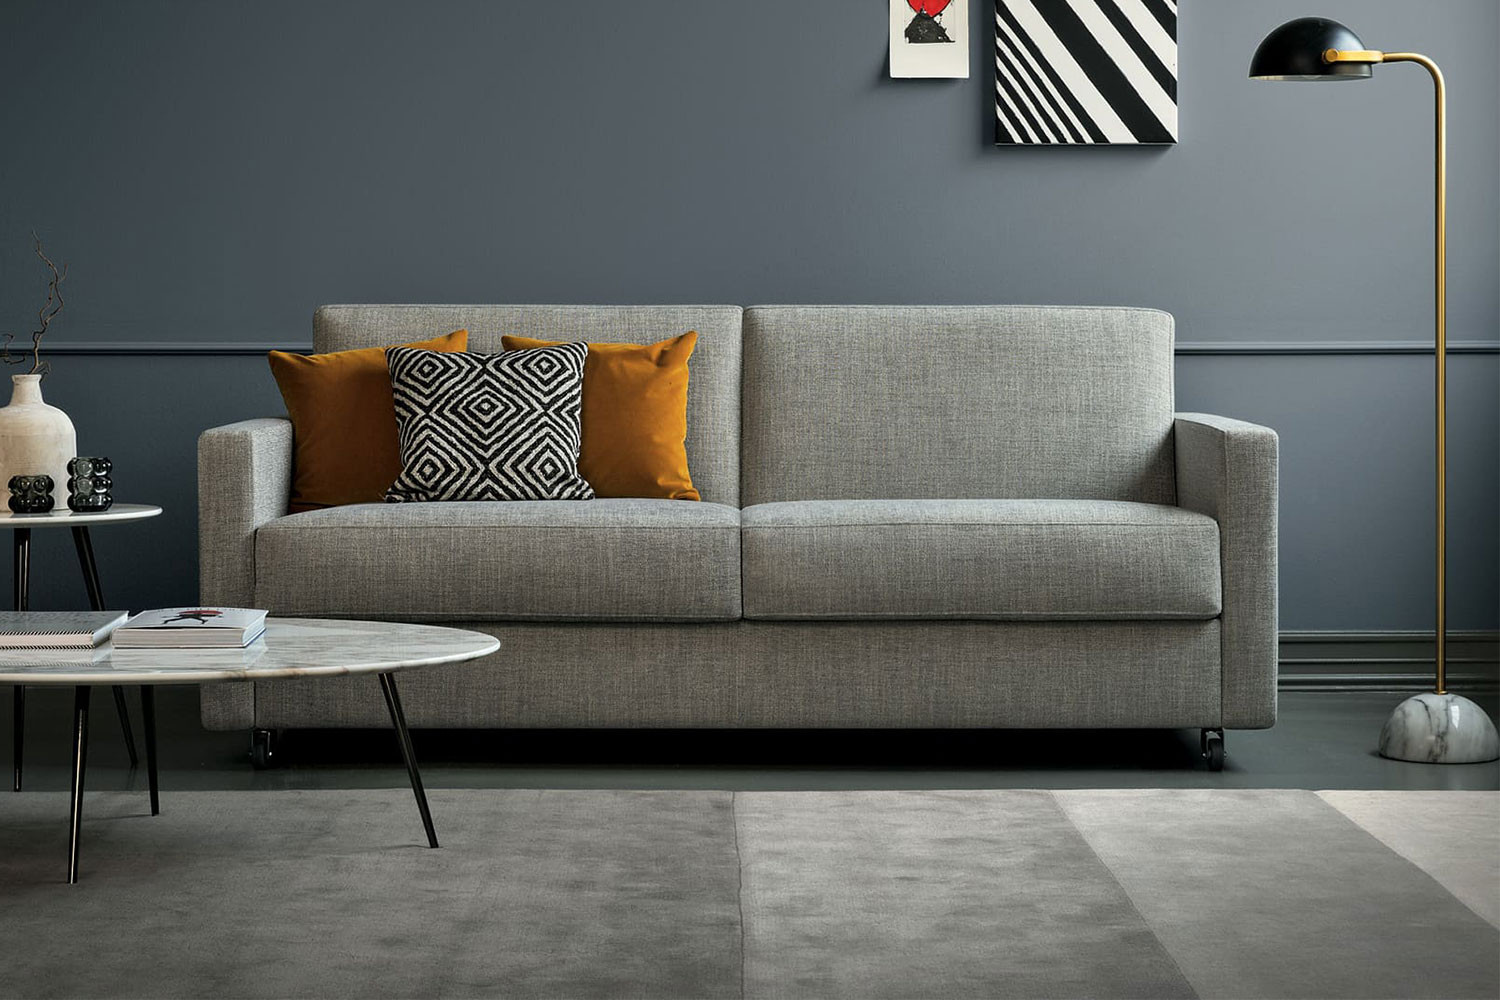 Sectional sofa bed with wheels, available as chair, 2-3 seater, storage chaise, corner